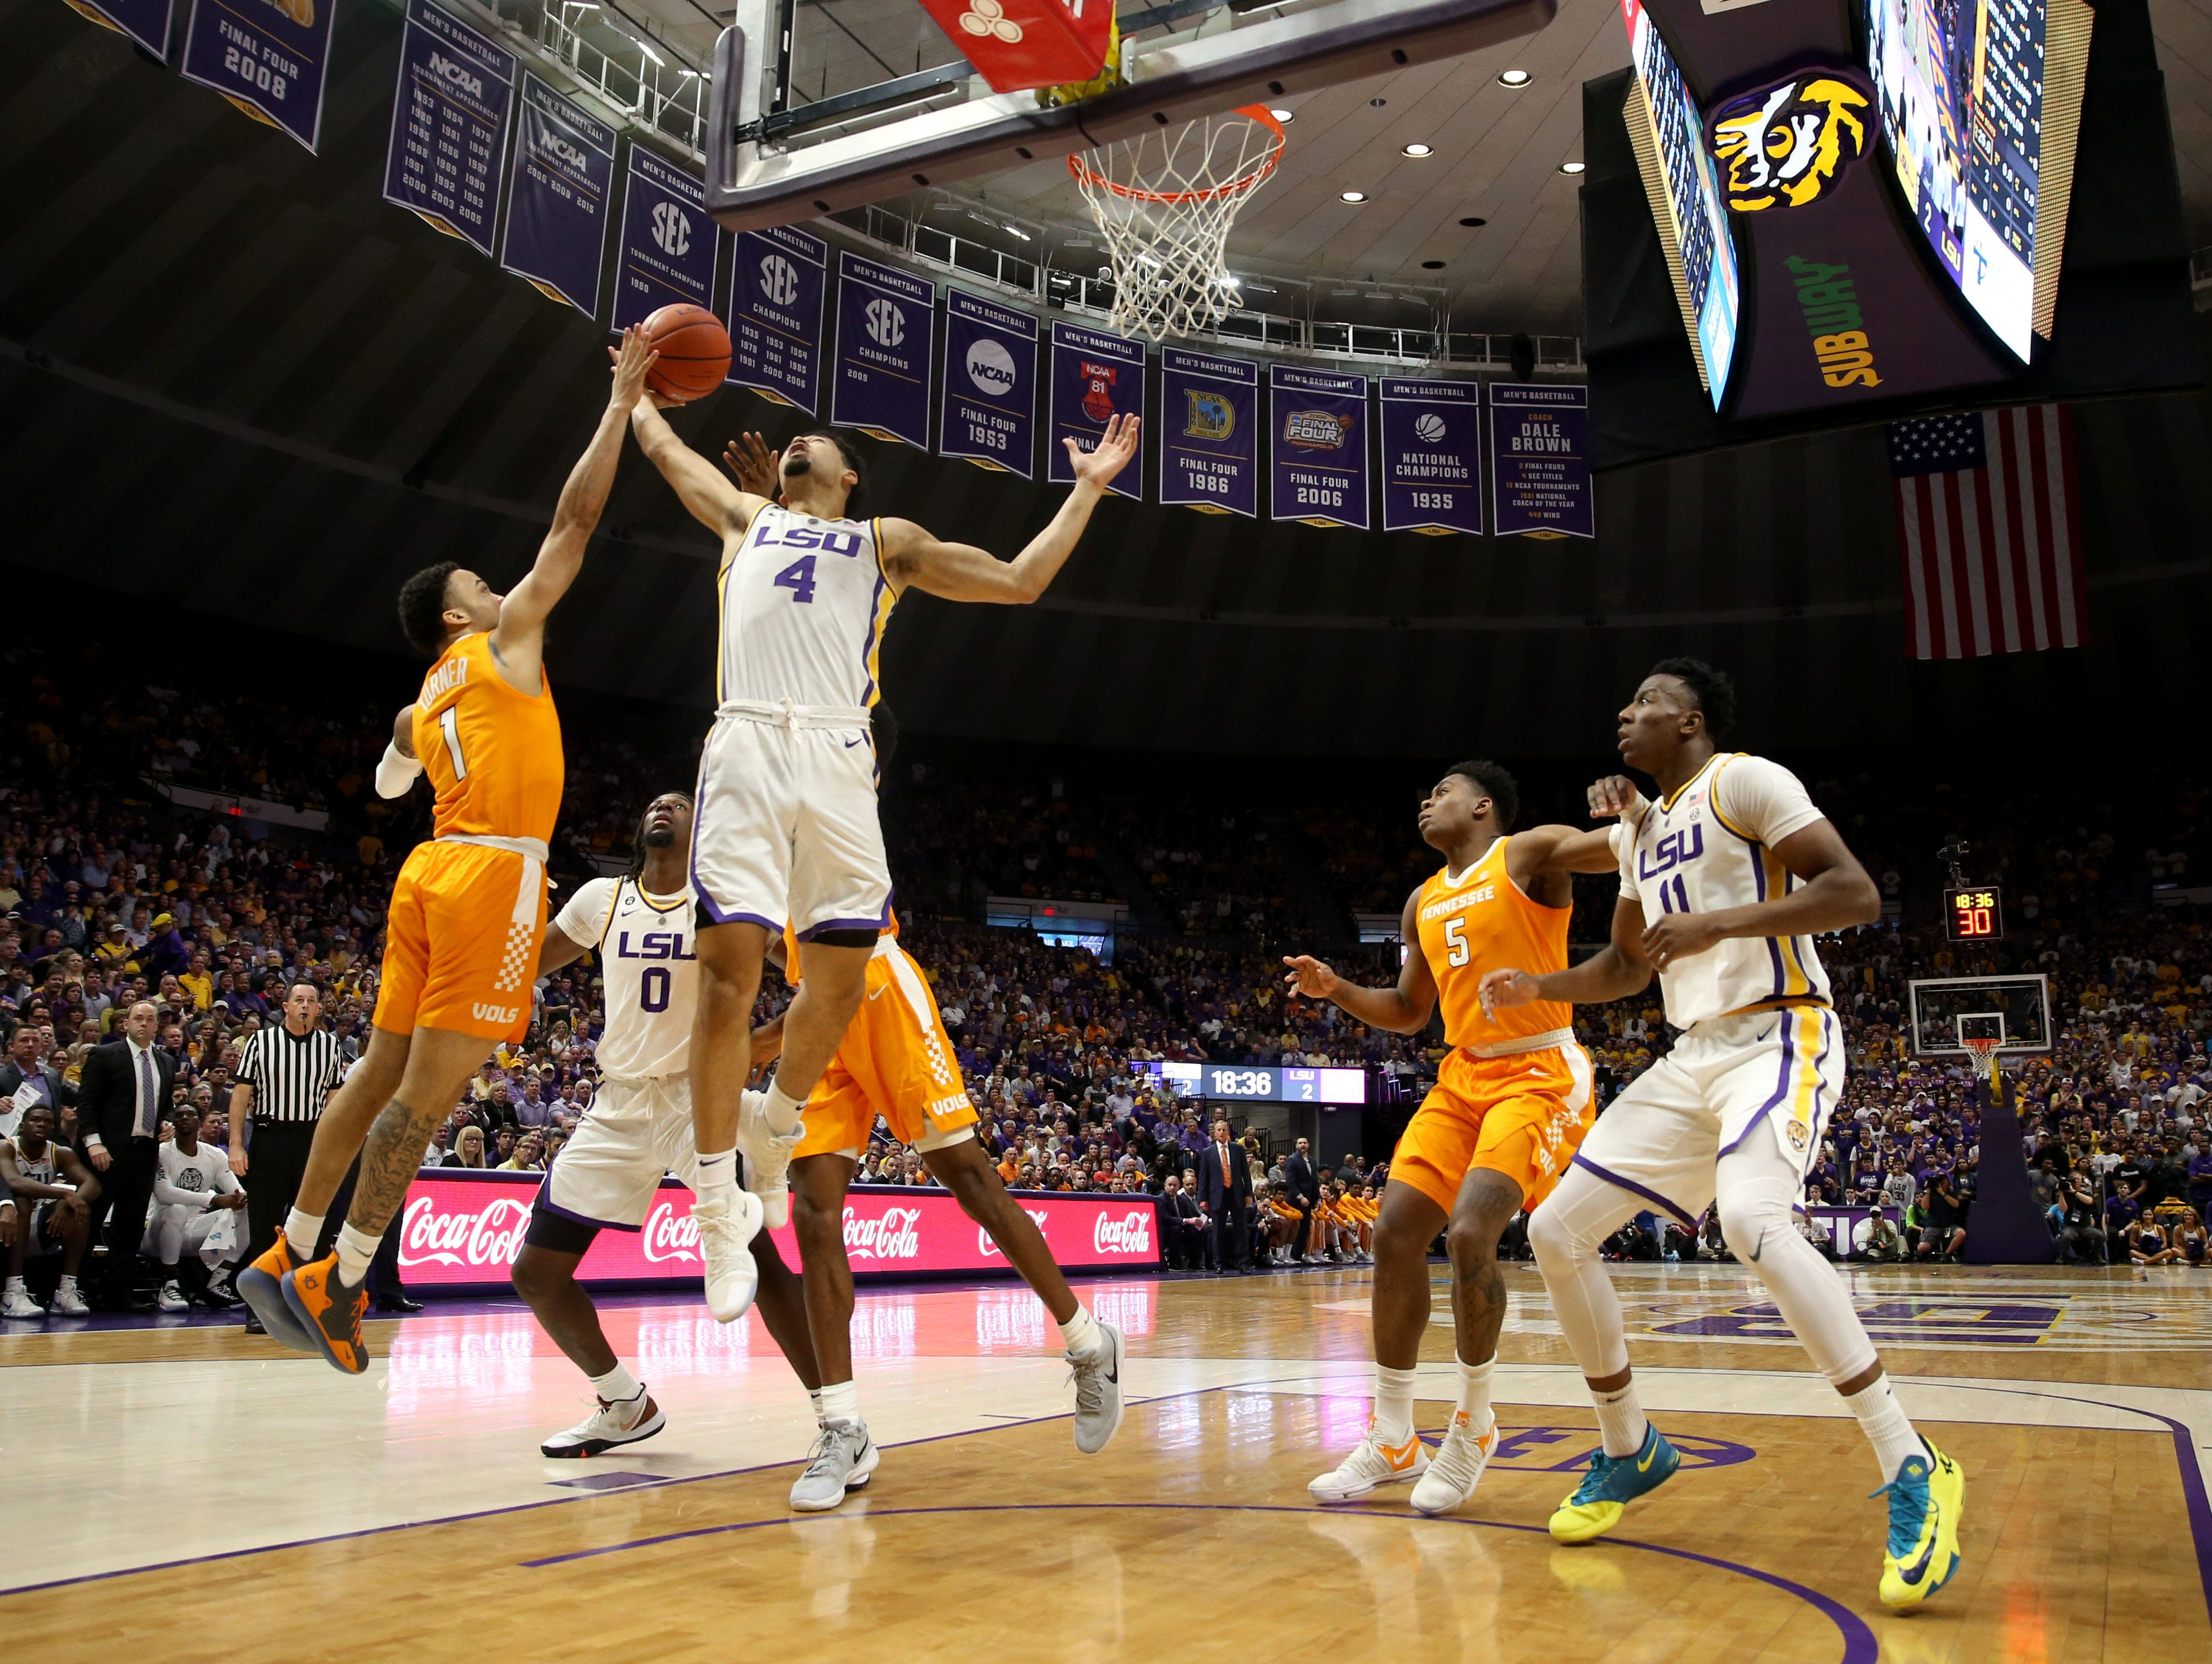 Feb 23, 2019; Baton Rouge, LA, USA; Tennessee Volunteers guard Lamonte Turner (1) and LSU Tigers guard Skylar Mays (4) fight for a rebound in the first half at the Maravich Assembly Center. Mandatory Credit: Chuck Cook-USA TODAY Sports